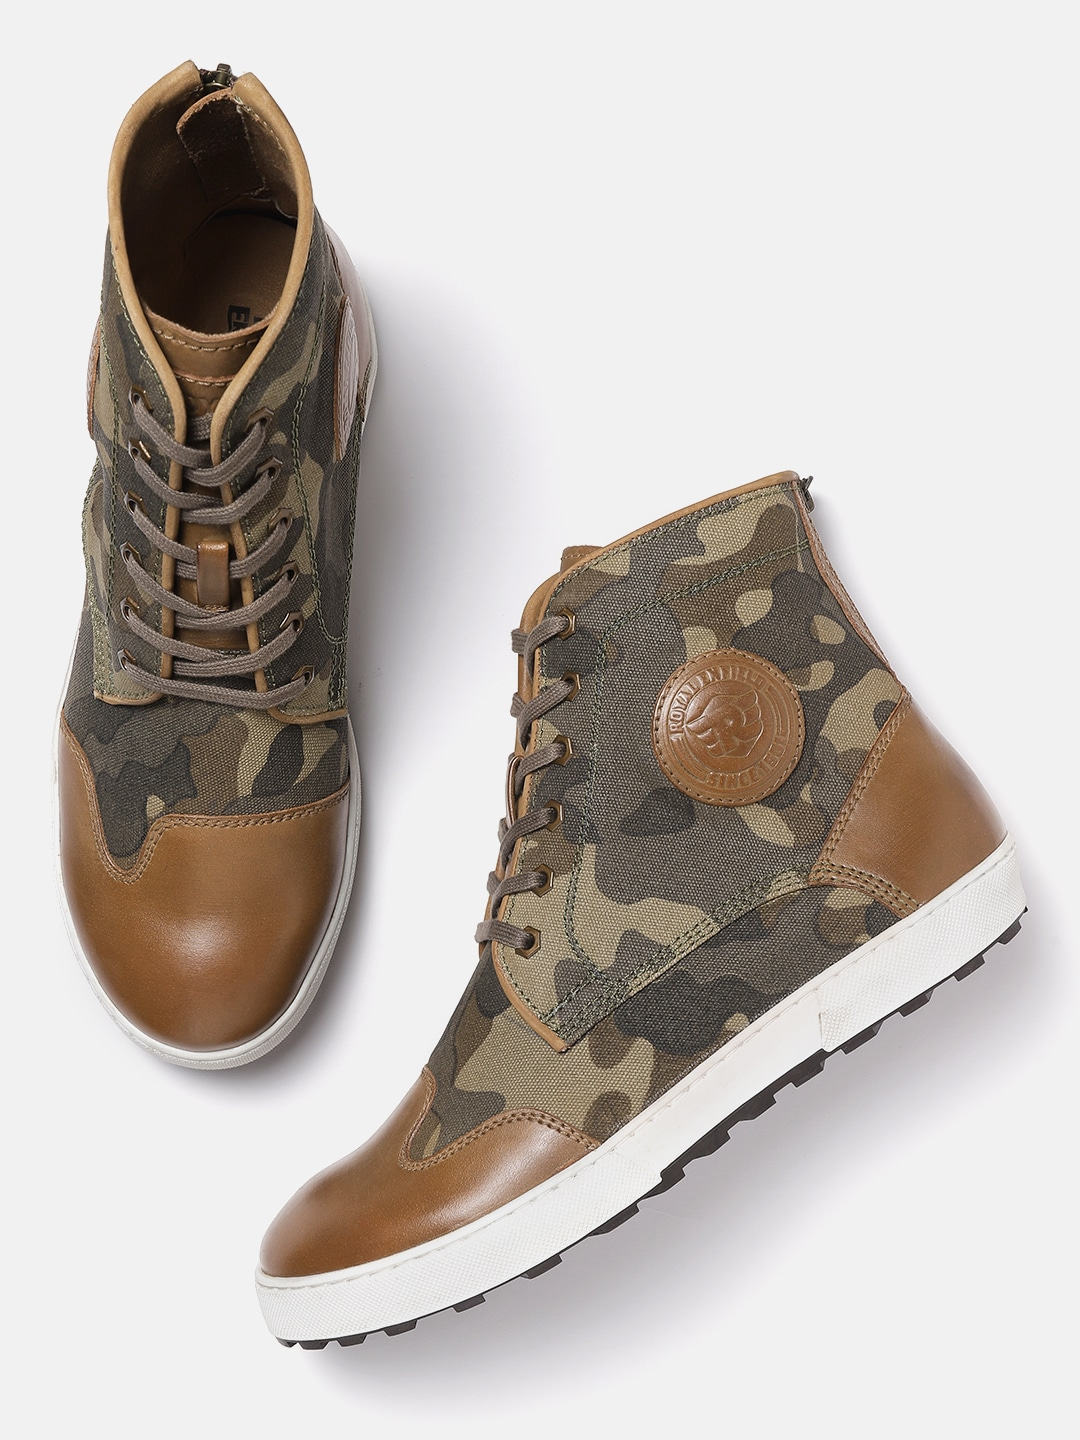 Olive Green & Brown Camouflage Print Mid-Top Sneakers